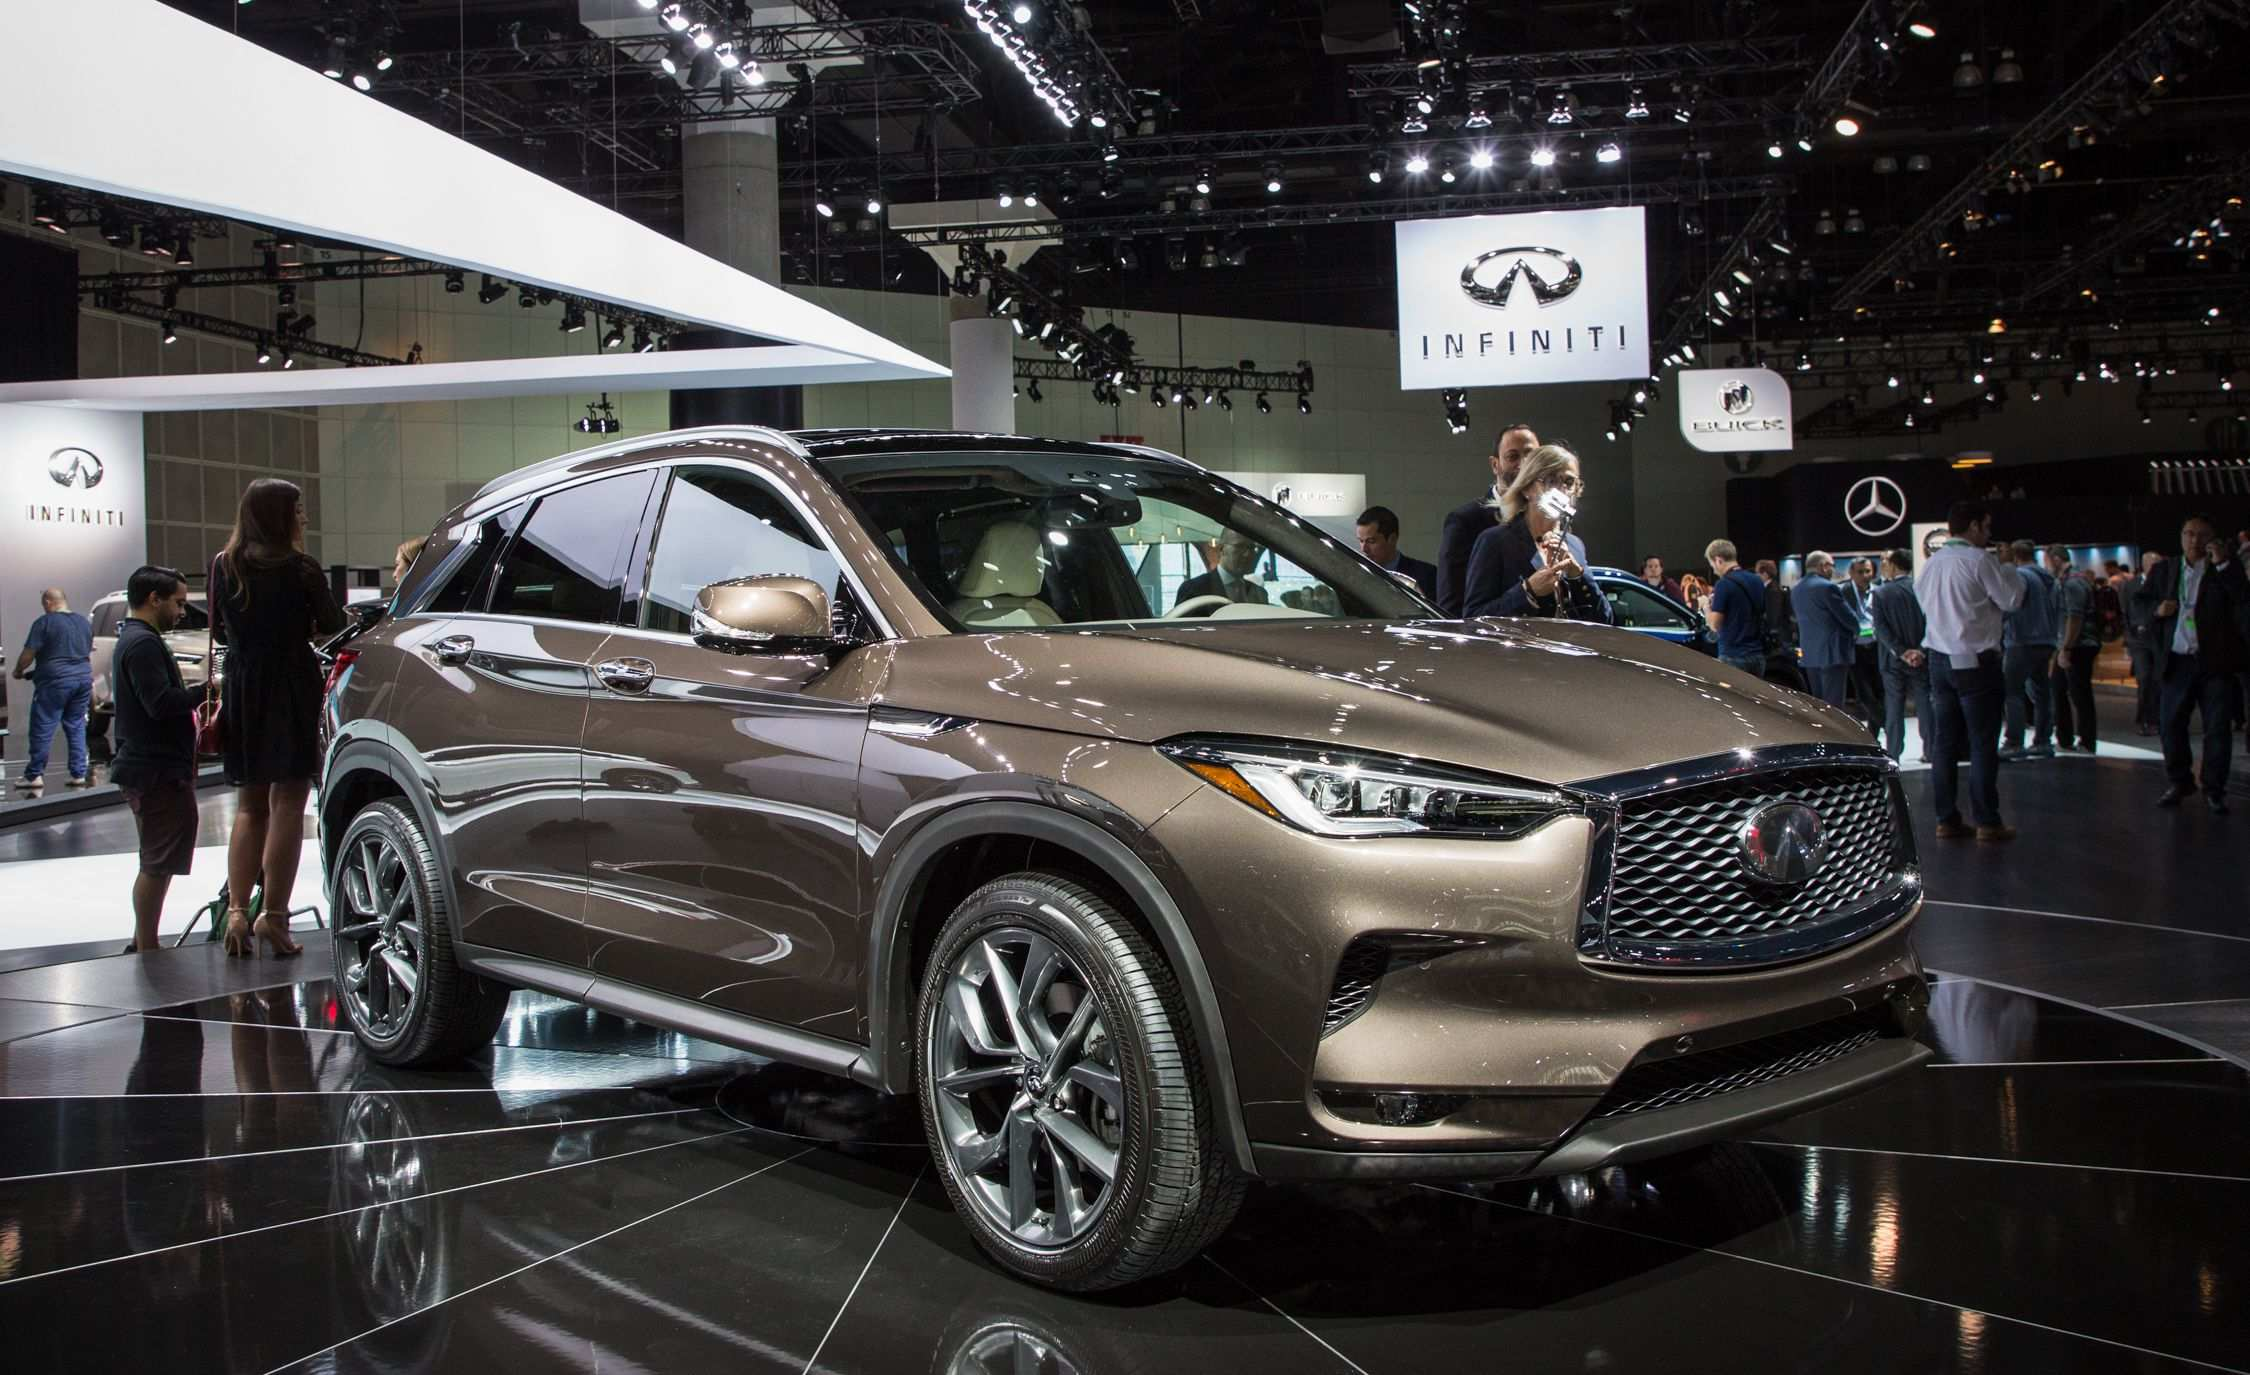 17 All New 2019 Infiniti Qx50 Weight Performance with 2019 Infiniti Qx50 Weight